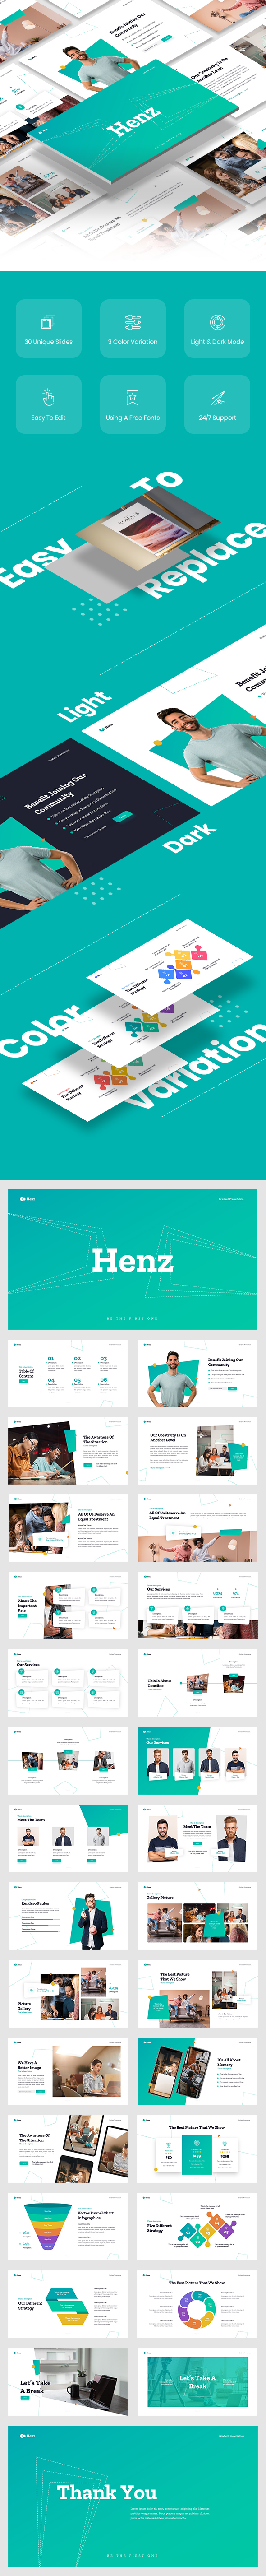 Henz Business Google Slides Template